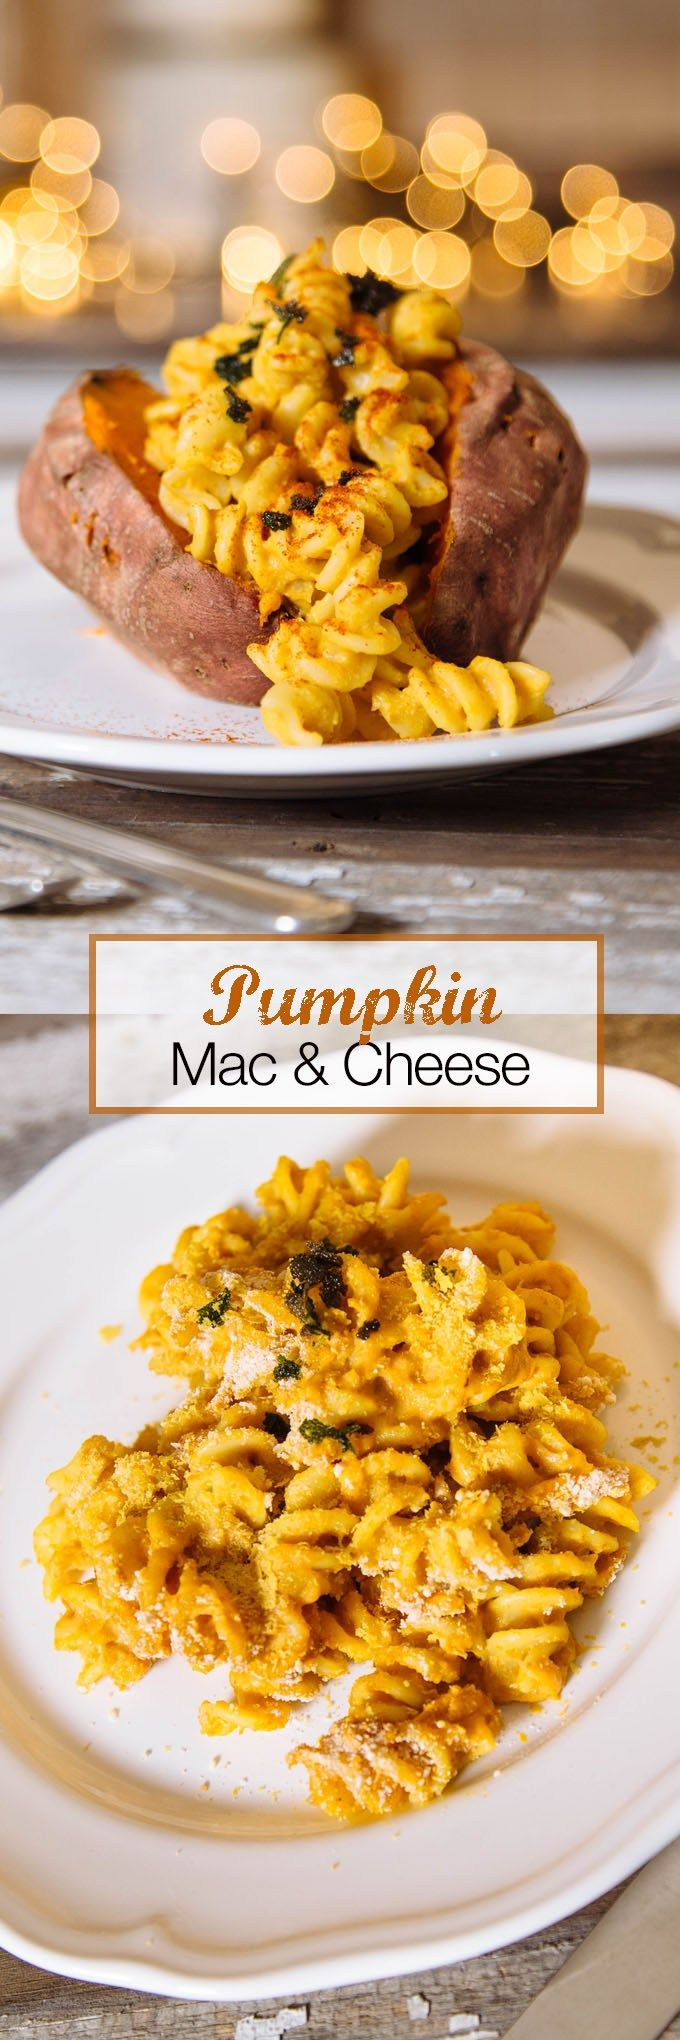 Learn how to make a really simple Vegan Pumpkin Mac and Cheese. This Pumpkin Mac and cheese is the perfect dish for any holiday, and is really simple to make. Take your regular vegan mac and cheese up a notch with pumpkin! pumpkin Mac and Cheese recipe VEGAN